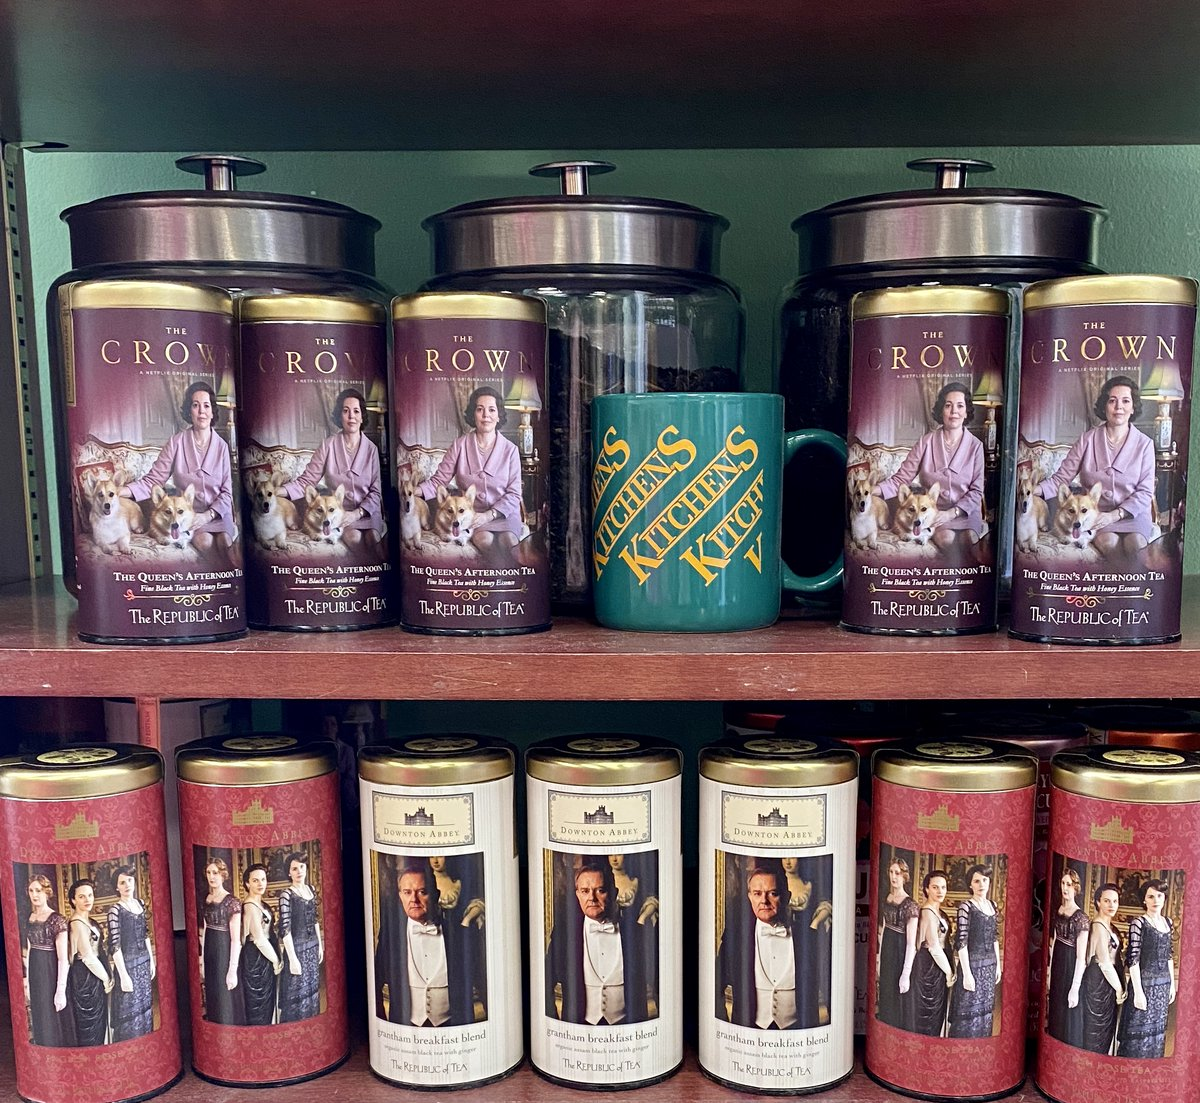 Who's ready for The Crown season 4 to be released in November on Netflix? Get ready for the new season with The Crown Tea from our Kitchens store at Branson Landing! They also have some great Downton Abbey teas too. #TheCrown #DowntonAbbey #Tea #TeaTime https://t.co/lMKiwNjMLU